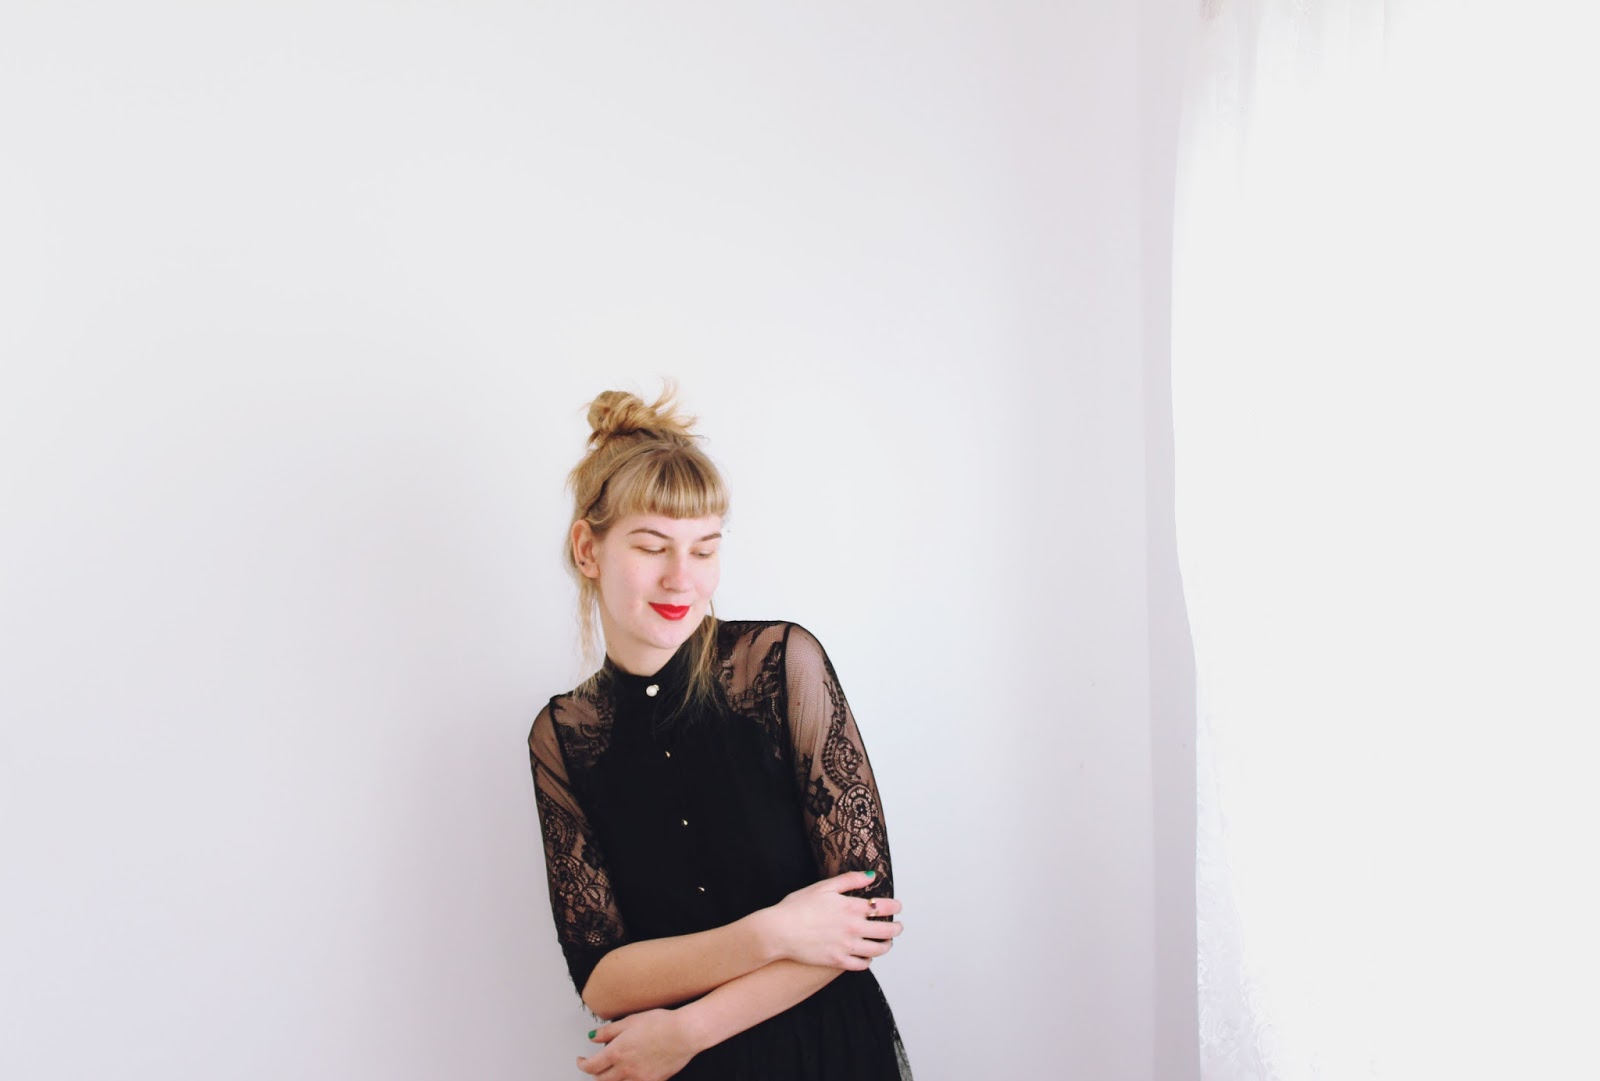 filipa canic, youarethepoet, filipa canic blog, you are the poet blog, fashion blog, personal style blog, zaful, new year's dress,